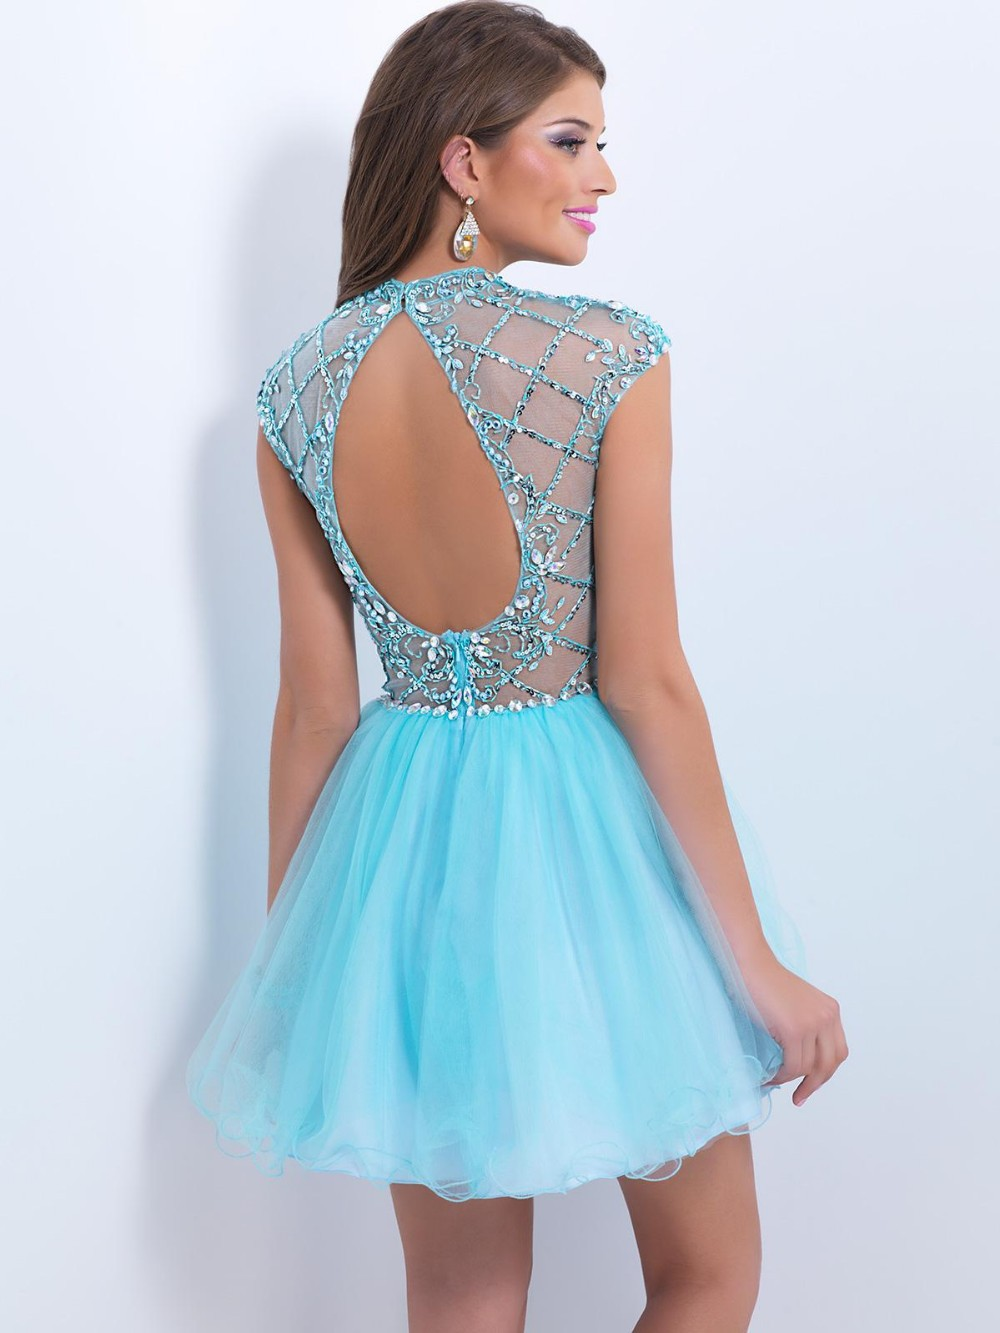 Pretty Homecoming Dresses Crystal Illusion High Neckline With Gorgeous Jeweled Bodice Unique Party dress-in Homecoming Dresses from Weddings & Events ...